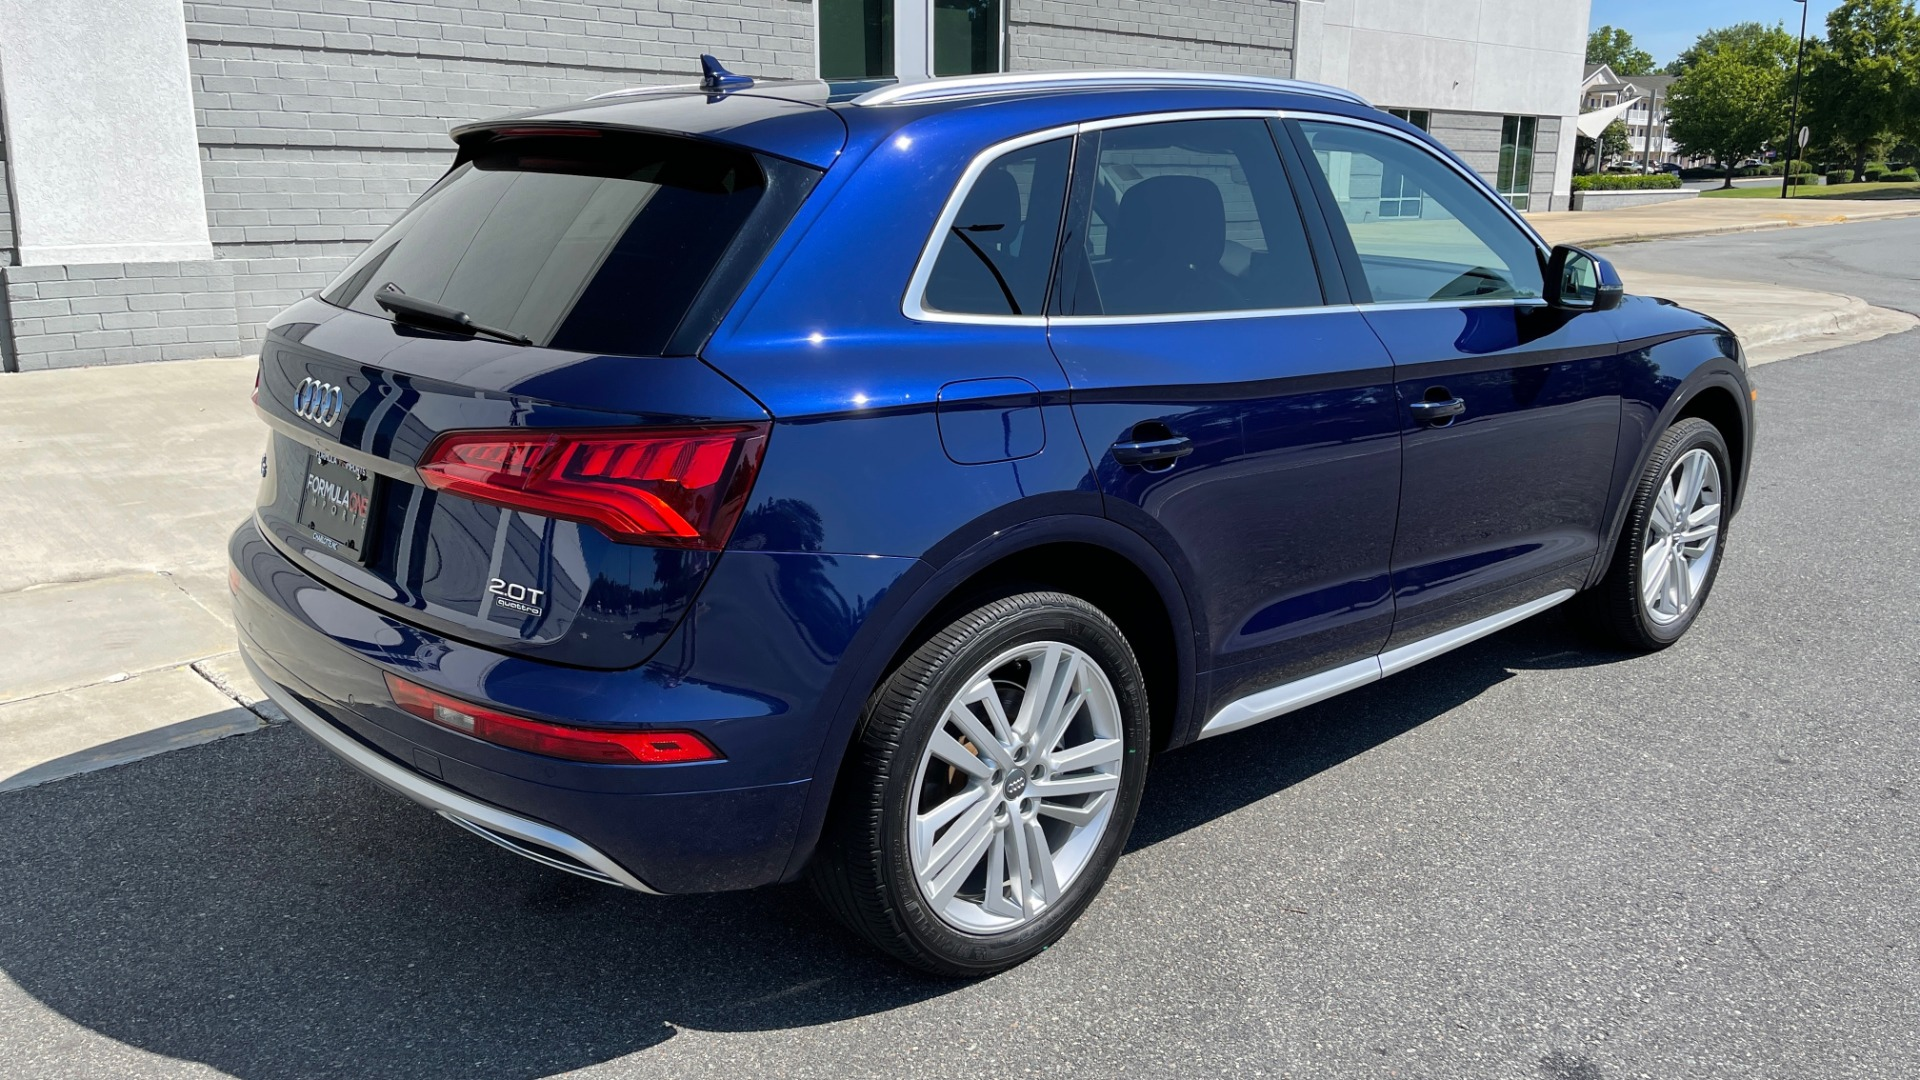 Used 2018 Audi Q5 PREMIUM PLUS / NAV / PANO-ROOF / PARK SYSTEM / REARVIEW for sale $33,695 at Formula Imports in Charlotte NC 28227 2